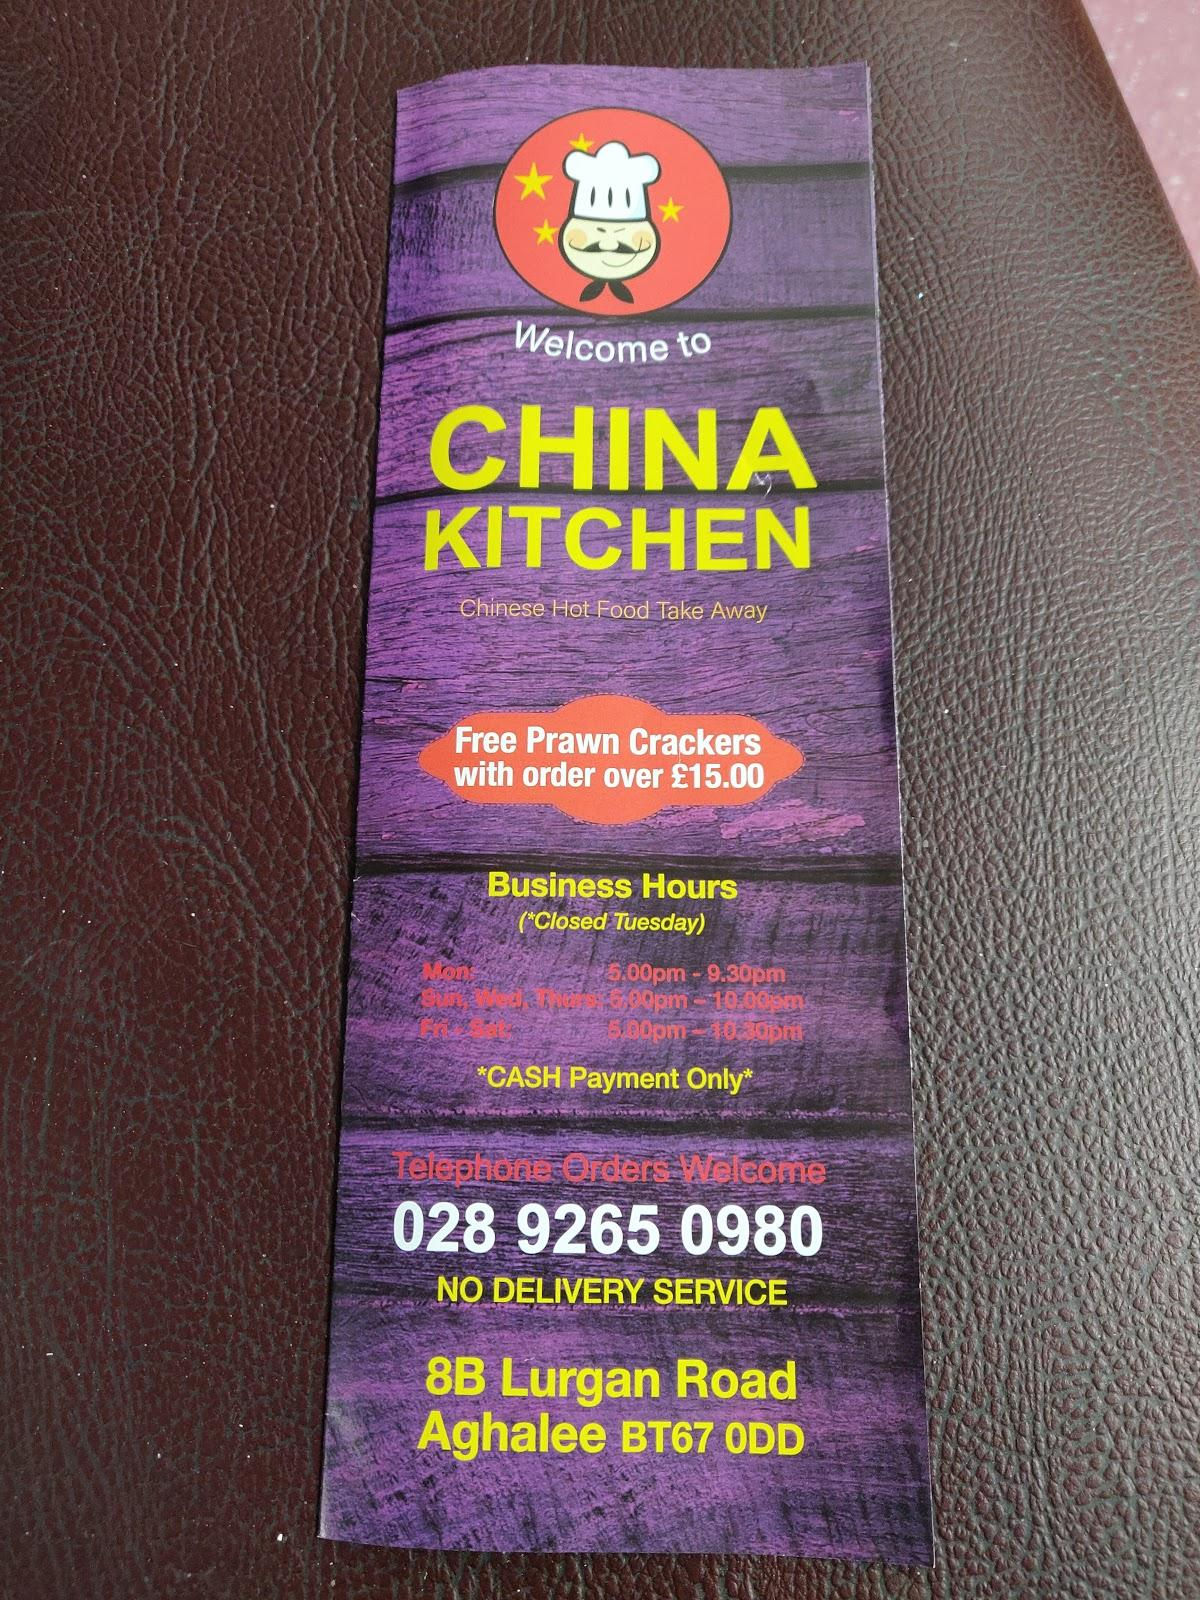 China Kitchen in Aghalee - Restaurant reviews